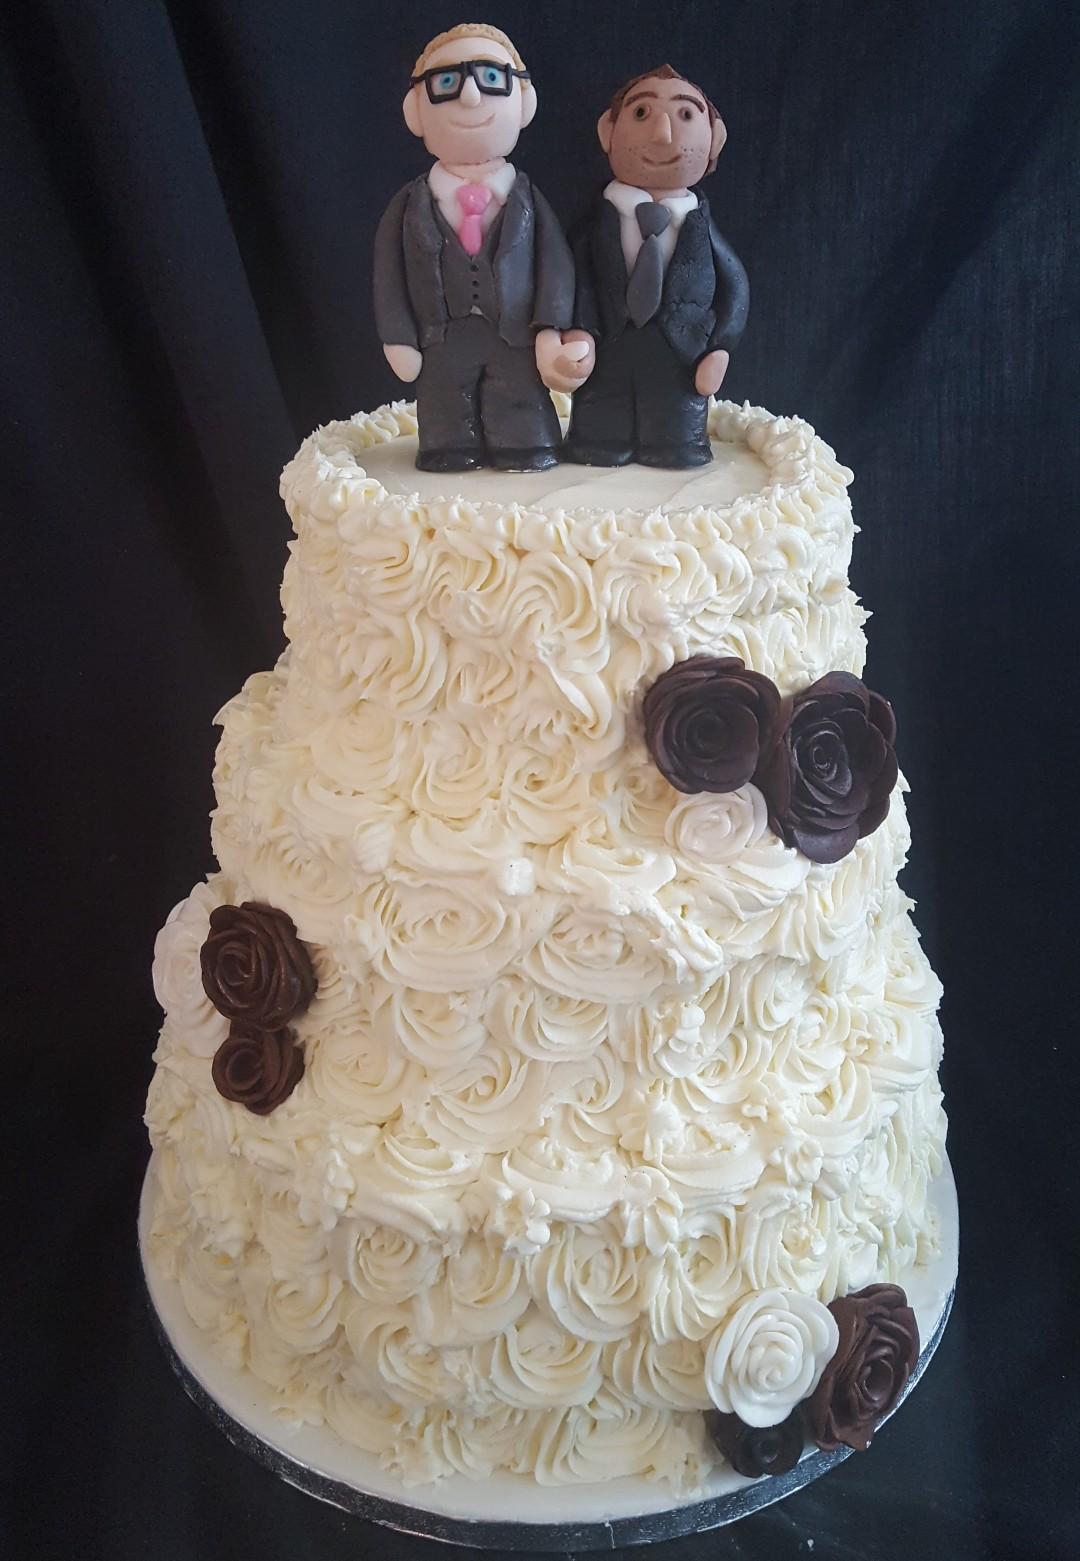 White chocolate wedding cake